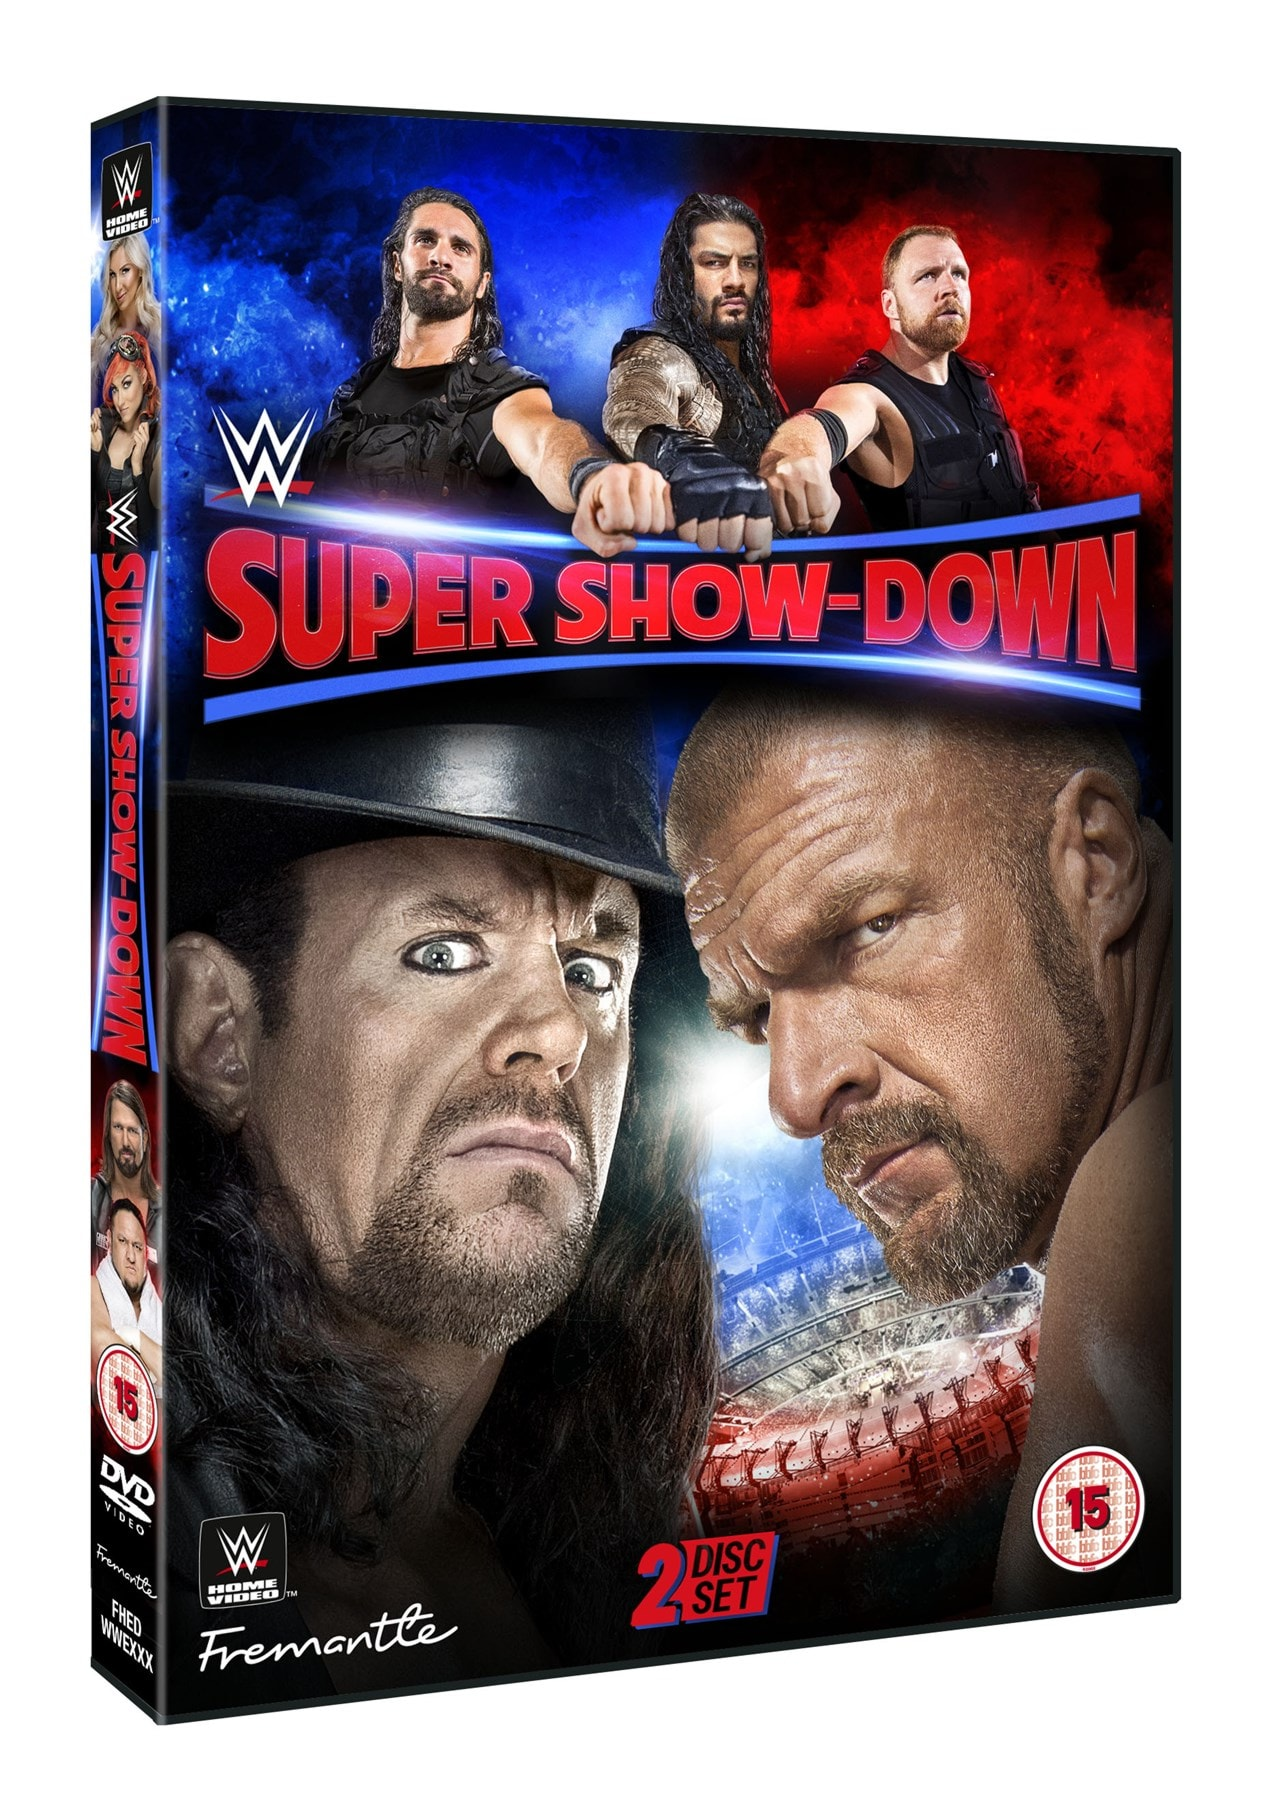 WWE: Super Show-down - 1